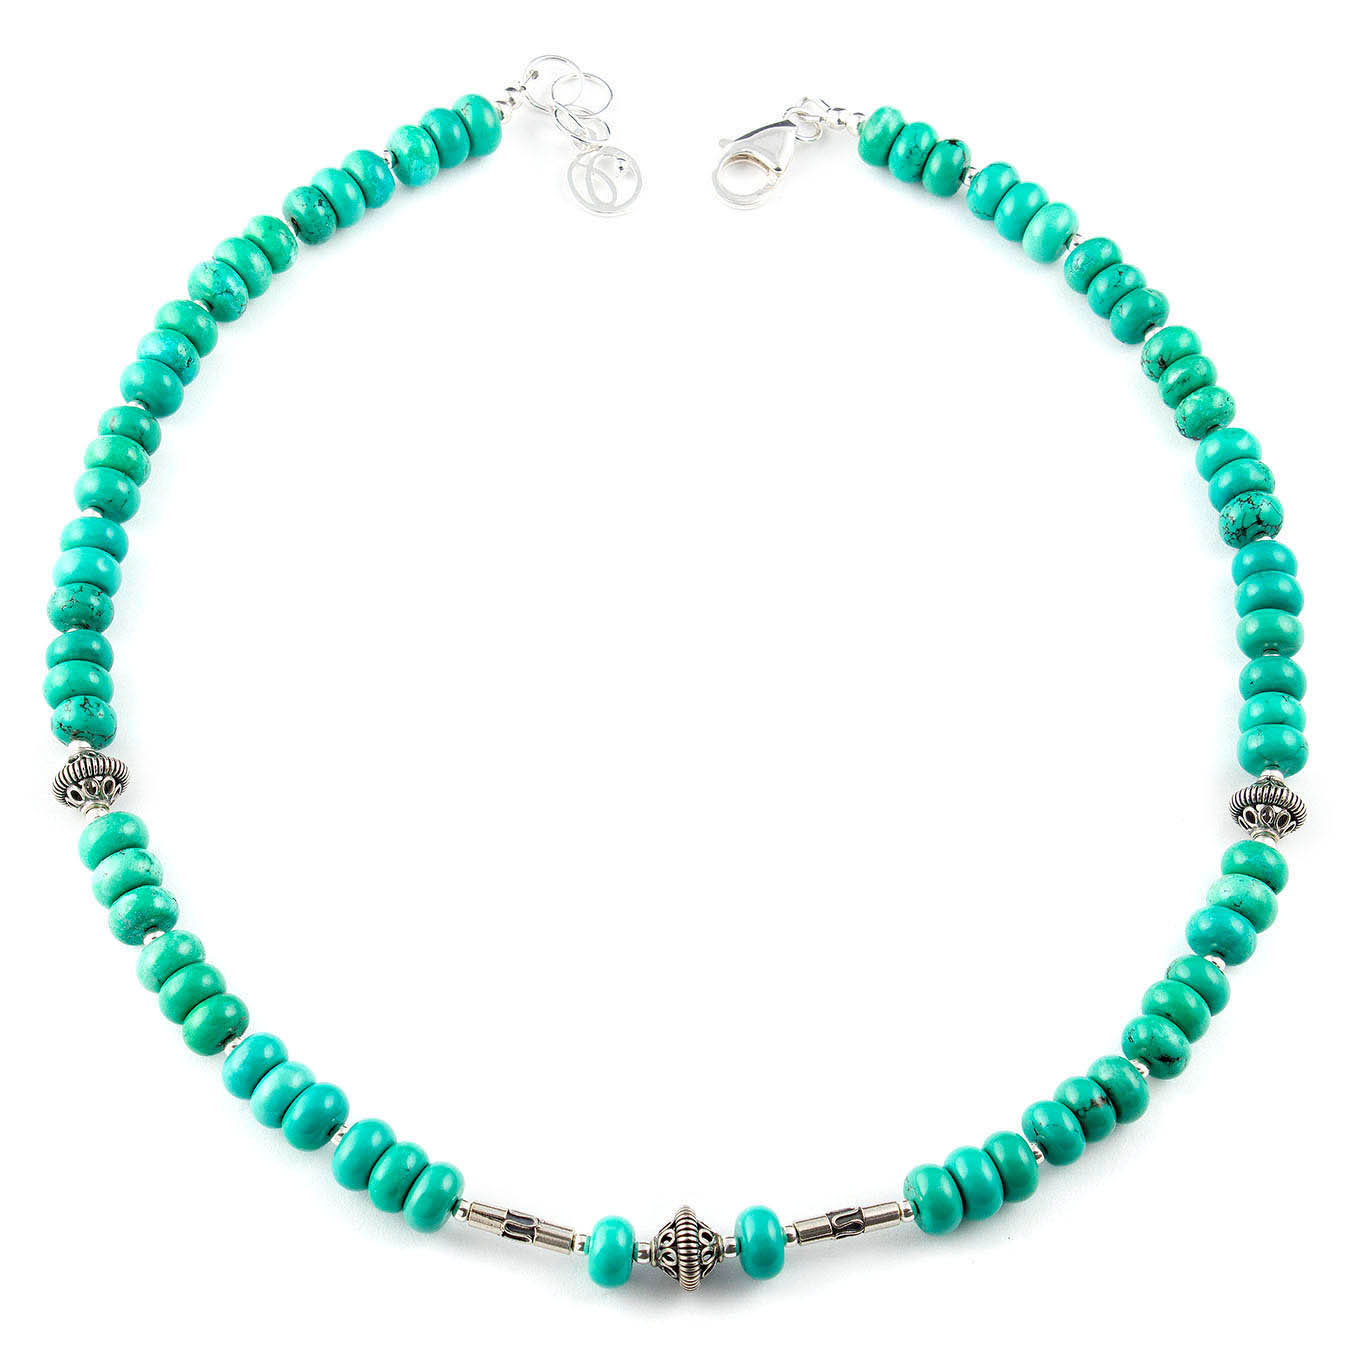 Birthstone choker necklace made of turquoise and bali silver